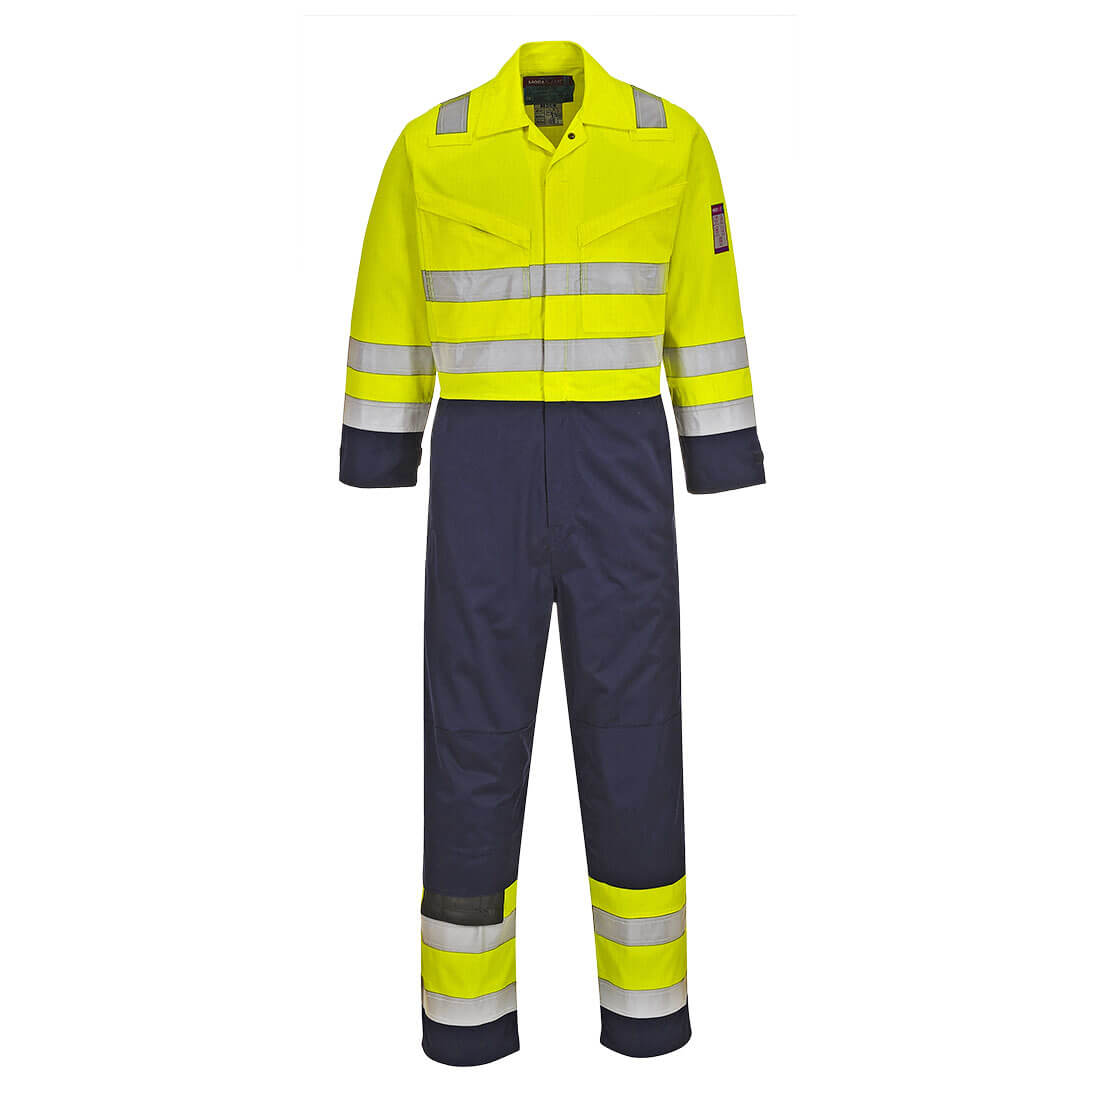 """Image of Modaflame Flame Resistant Hi Vis Overall Yellow / Navy Small 32"""""""